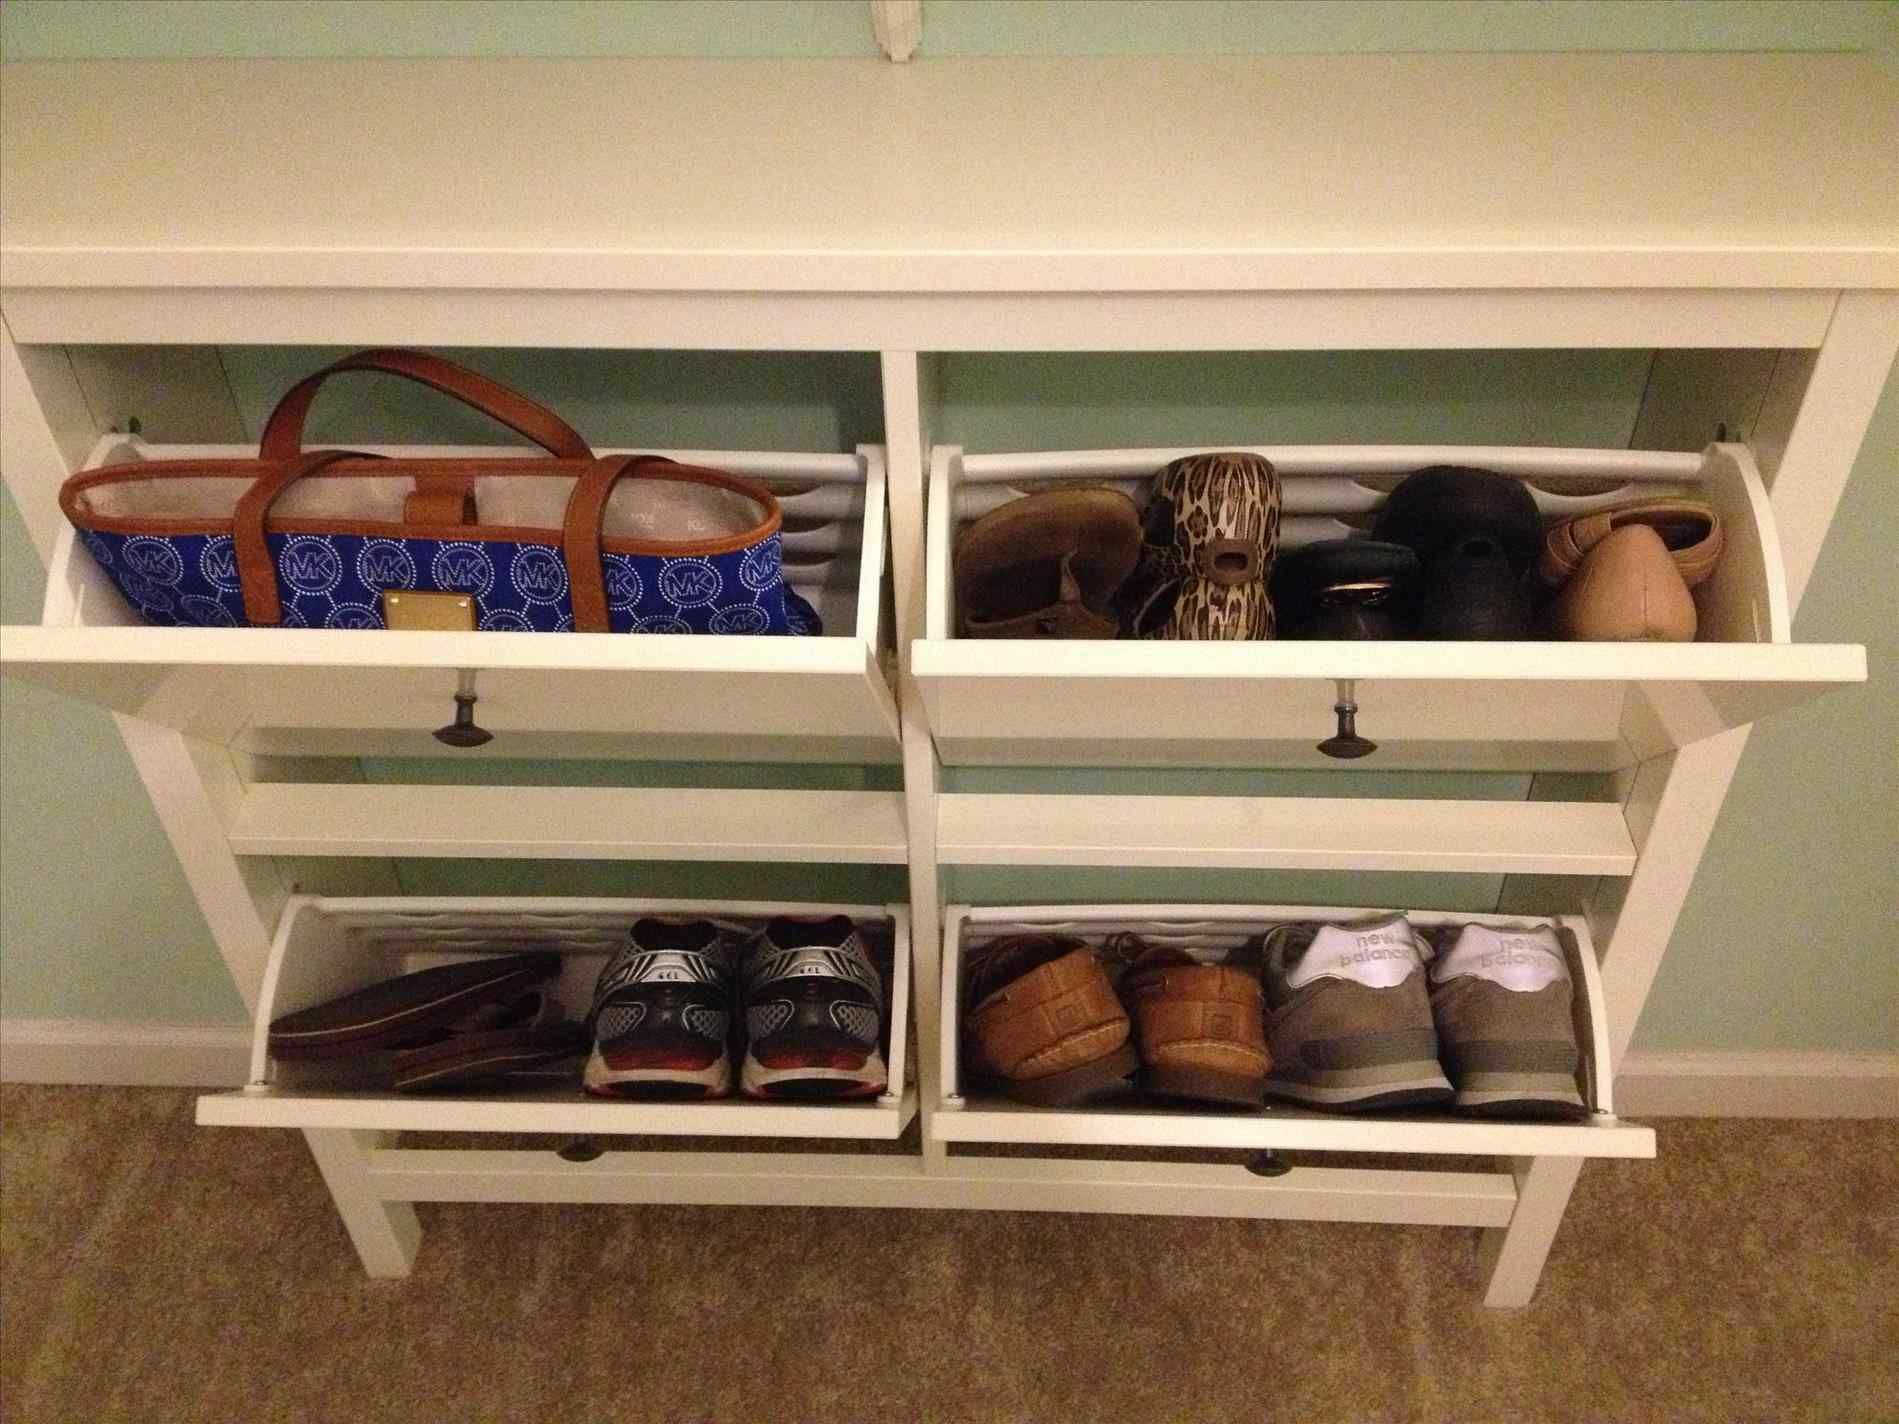 Best 14 Entryway Shoe Storage Solutions For Your Home Breakpr Under Bed Shoe Storage Shoe Rack Entryway Bench With Shoe Storage